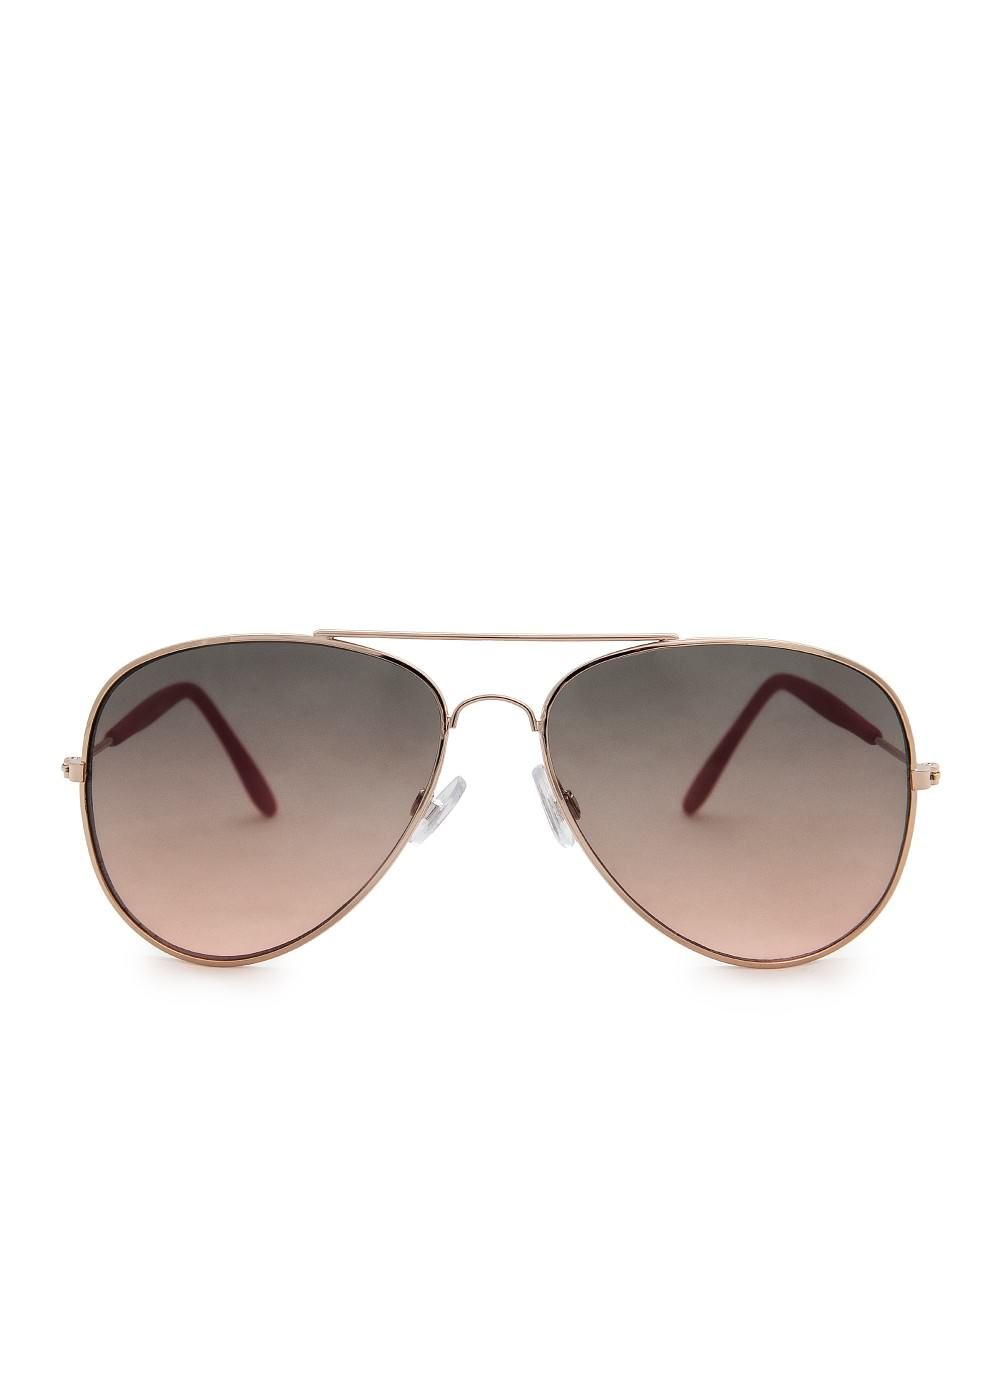 Aviator sunglasses for women - Aviator Sunglasses Sunglasses Women Mango